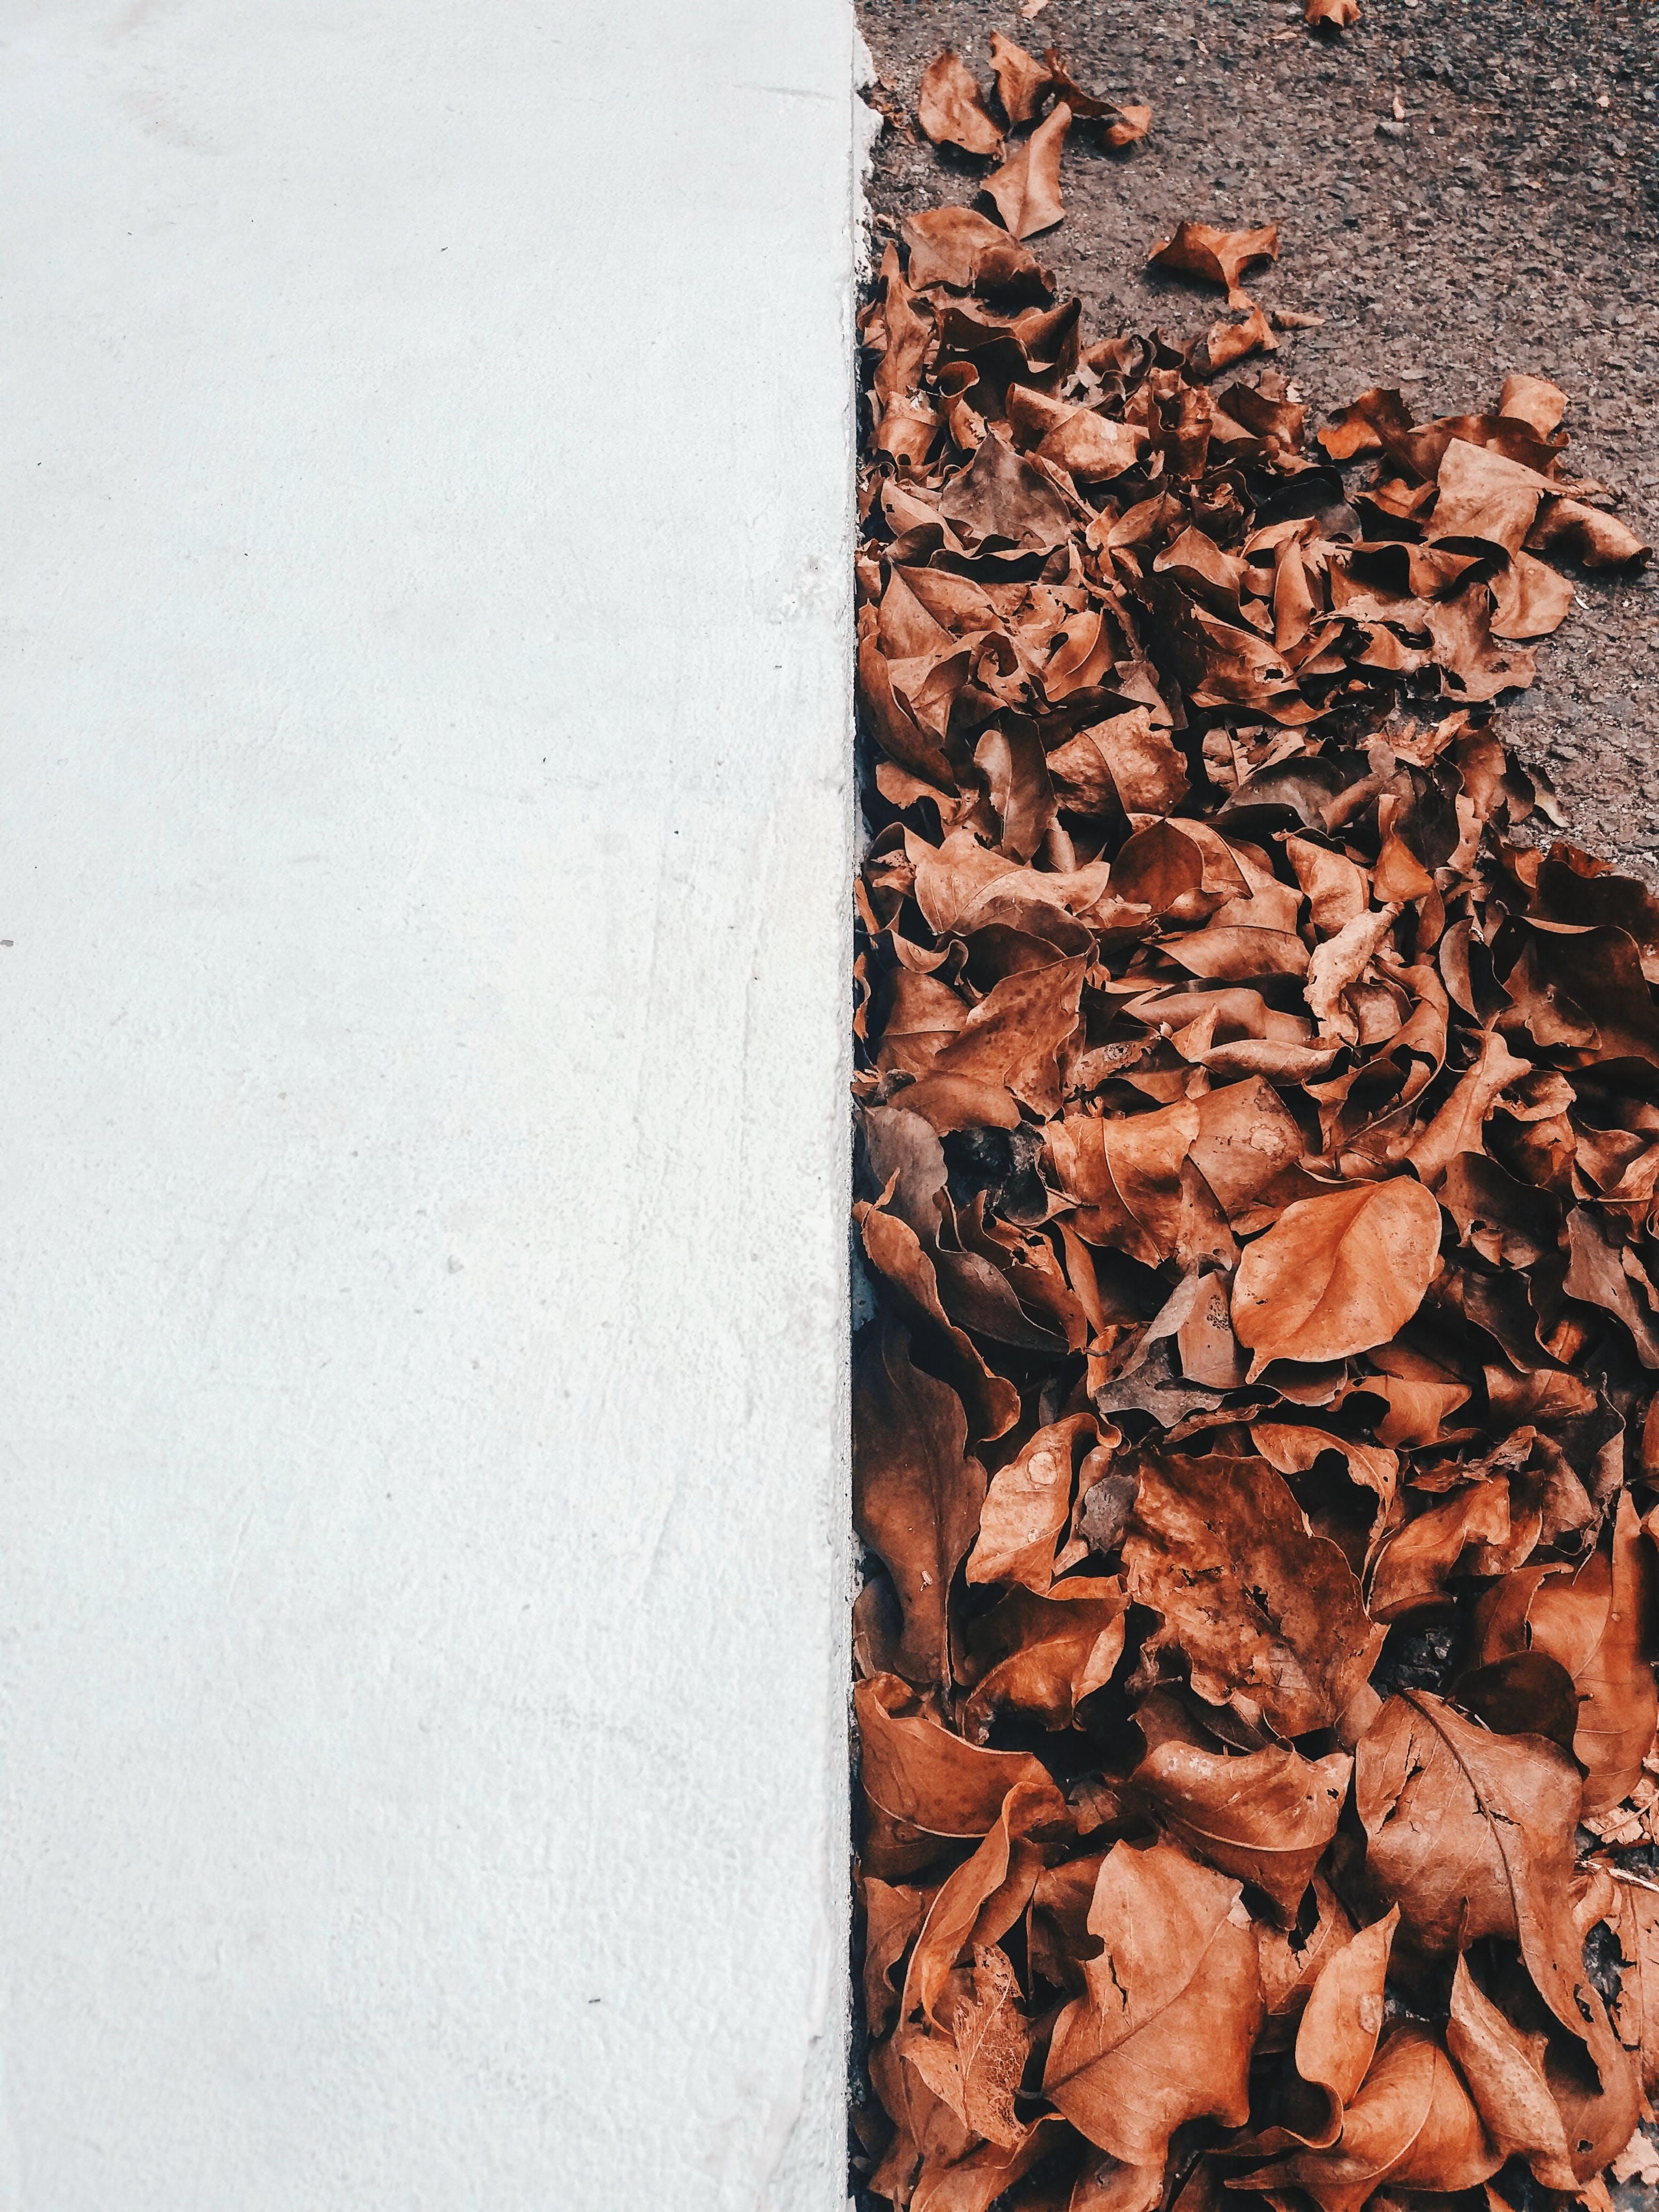 Dried Leaves Near White Concrete Wall